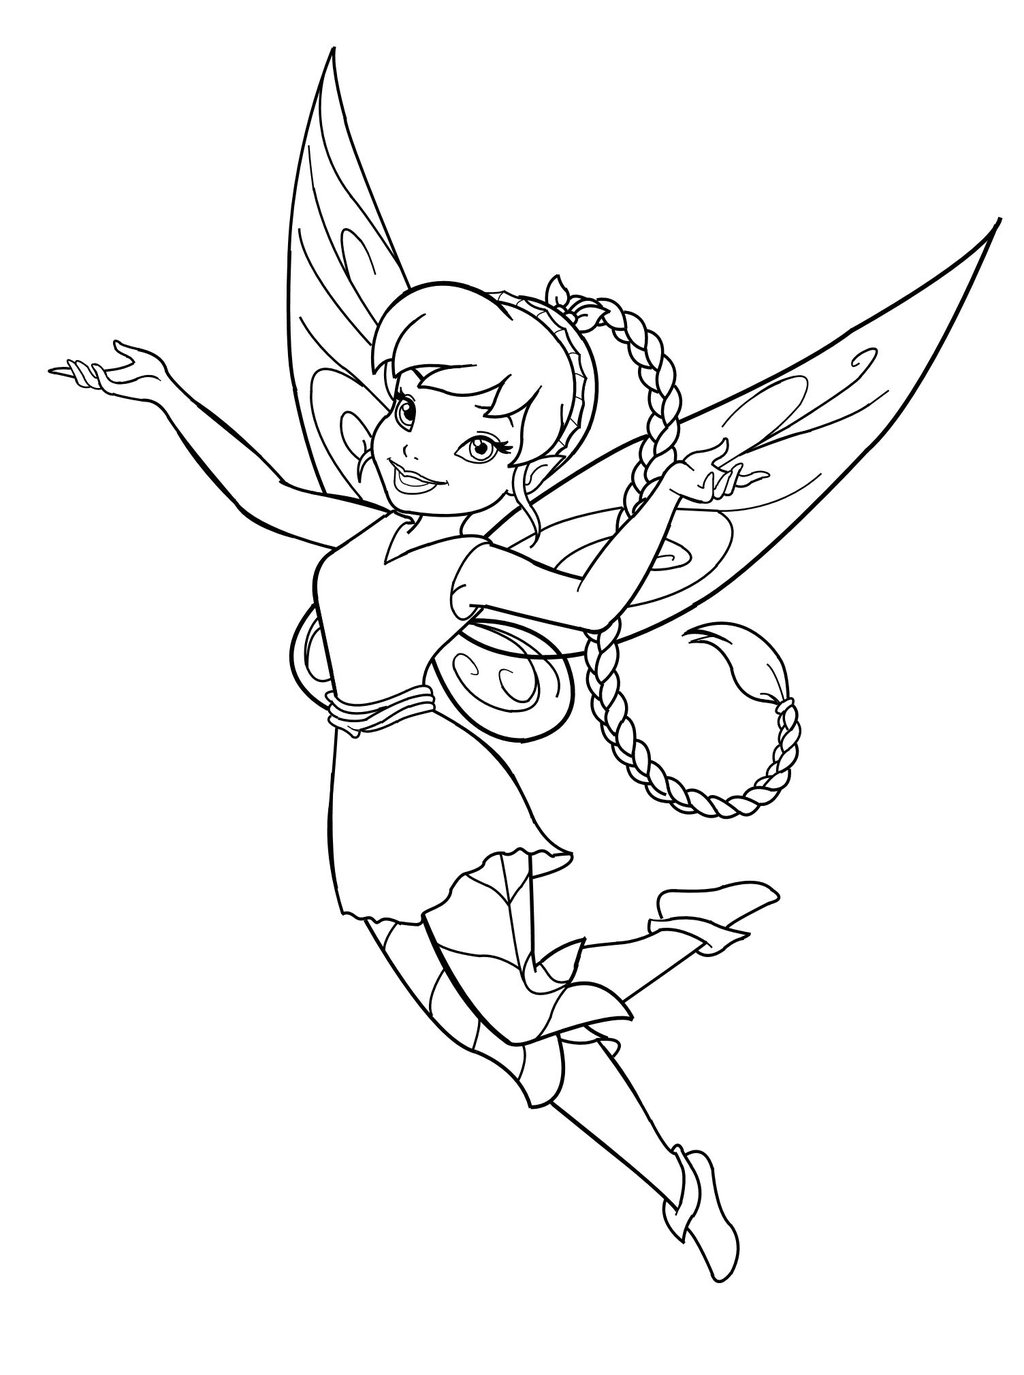 tinkerbell coloring pages kids - photo#9